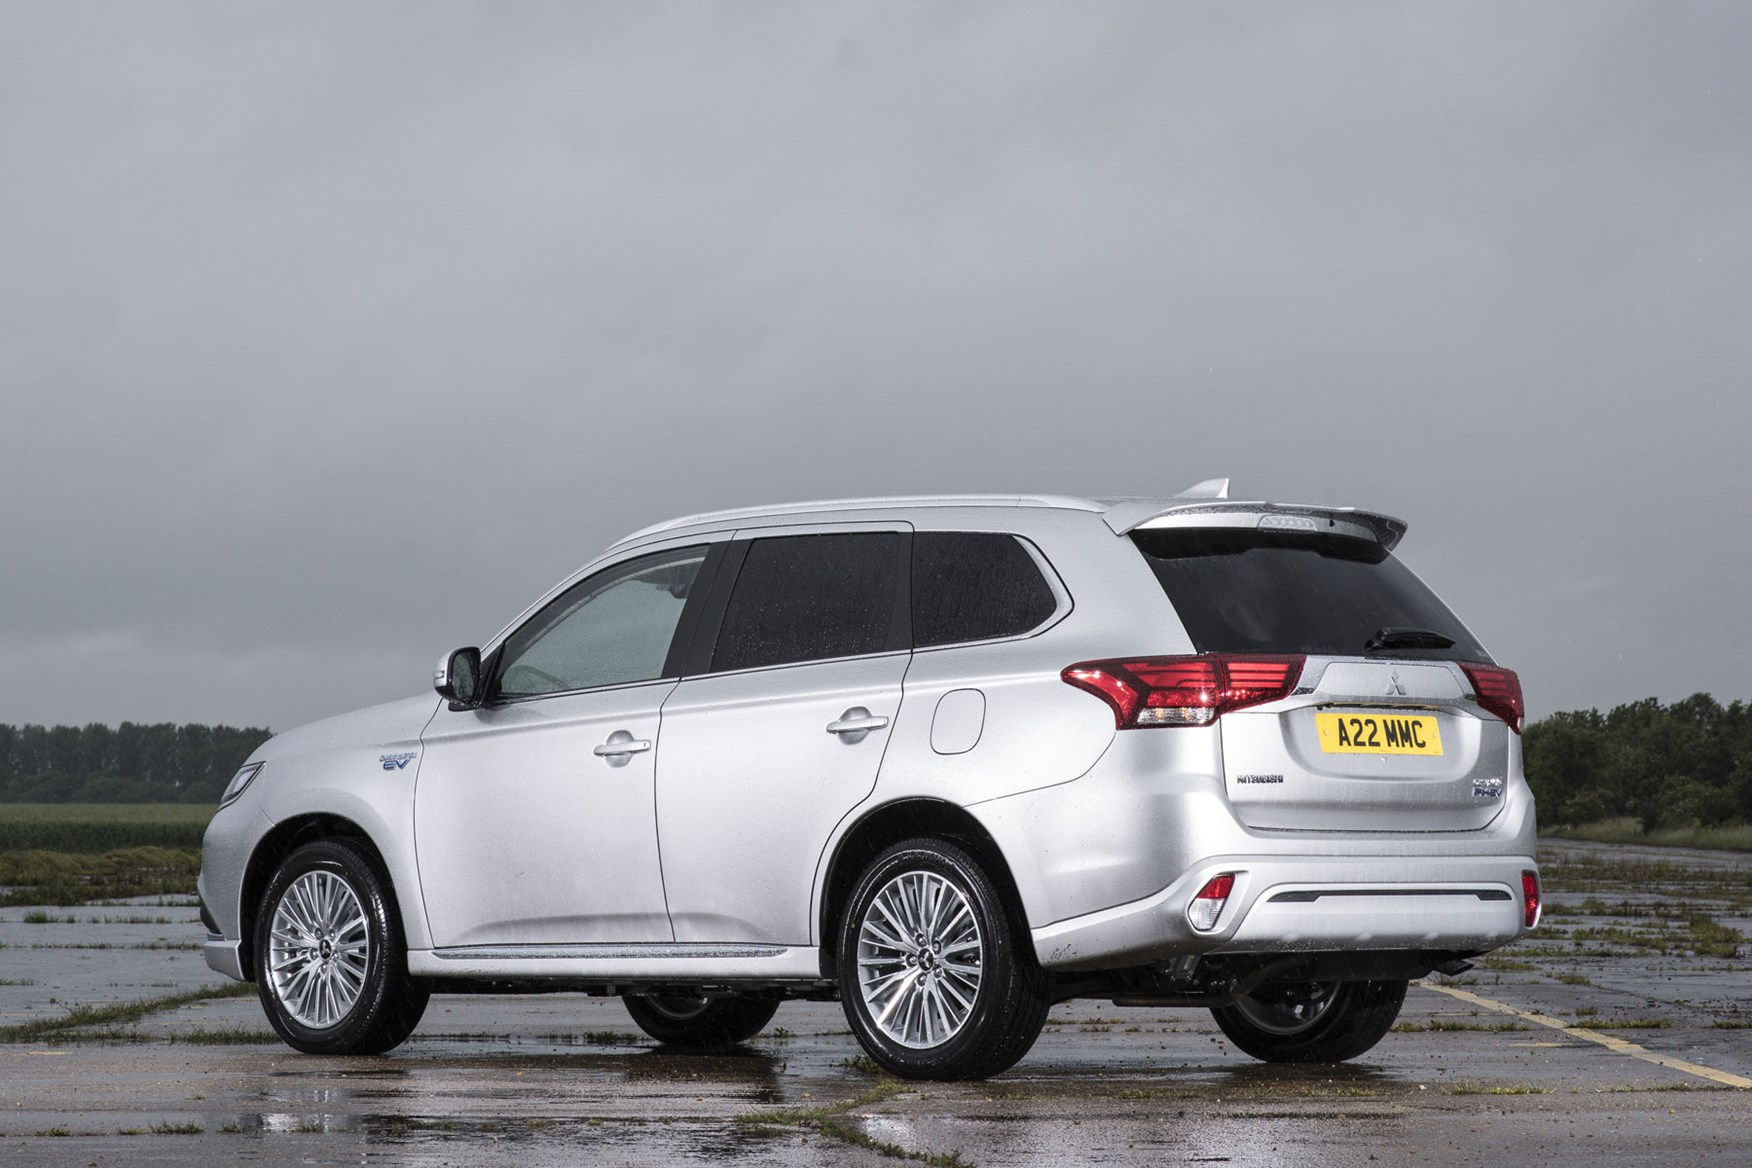 Mitsubishi Outlander Commercial 4x4 van review - 2019 PHEV rear view, silver